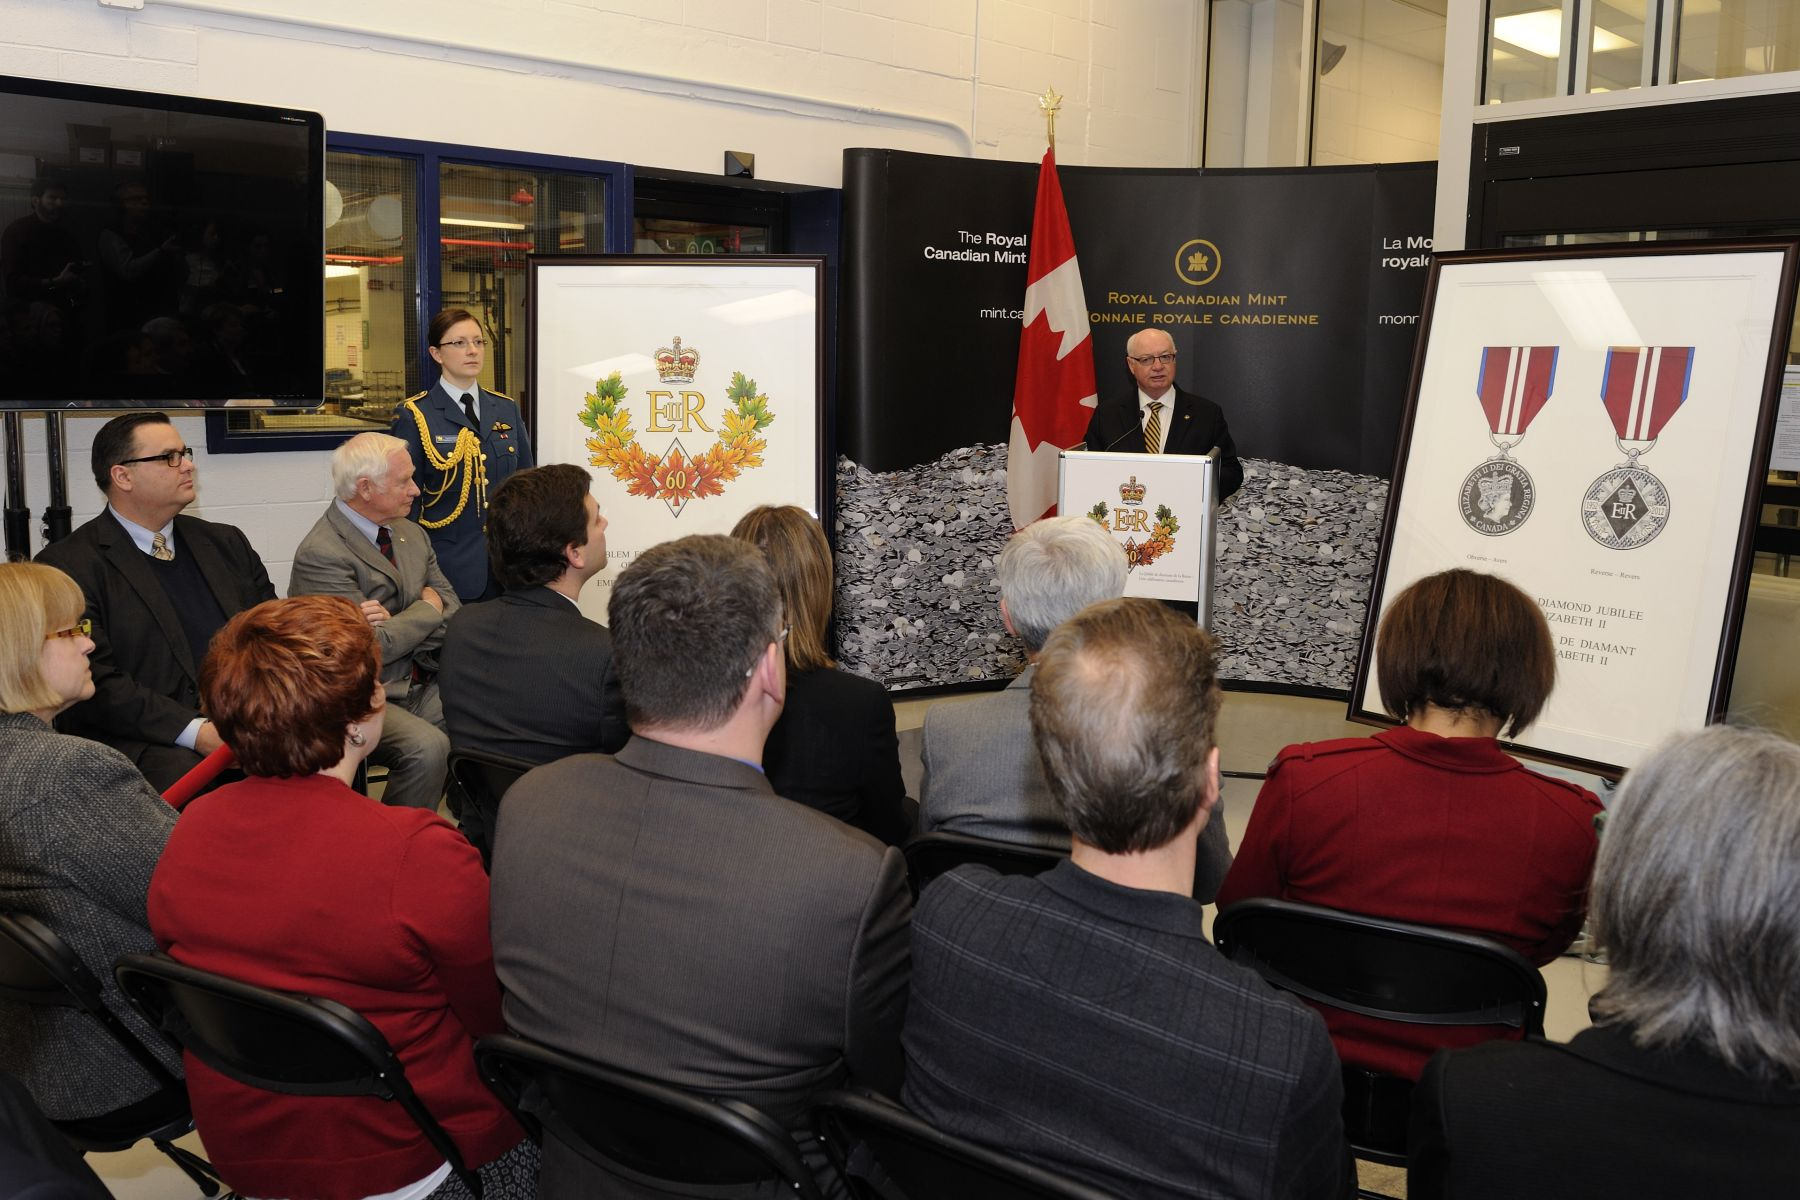 His Excellency participated in a symbolic striking of the Queen Elizabeth II Diamond Jubilee Medal, at the Royal Canadian Mint, in Ottawa. Mr. James B. Love, Chair of the Royal Canadian Mint Board of Directors, welcomed guests to this special event.